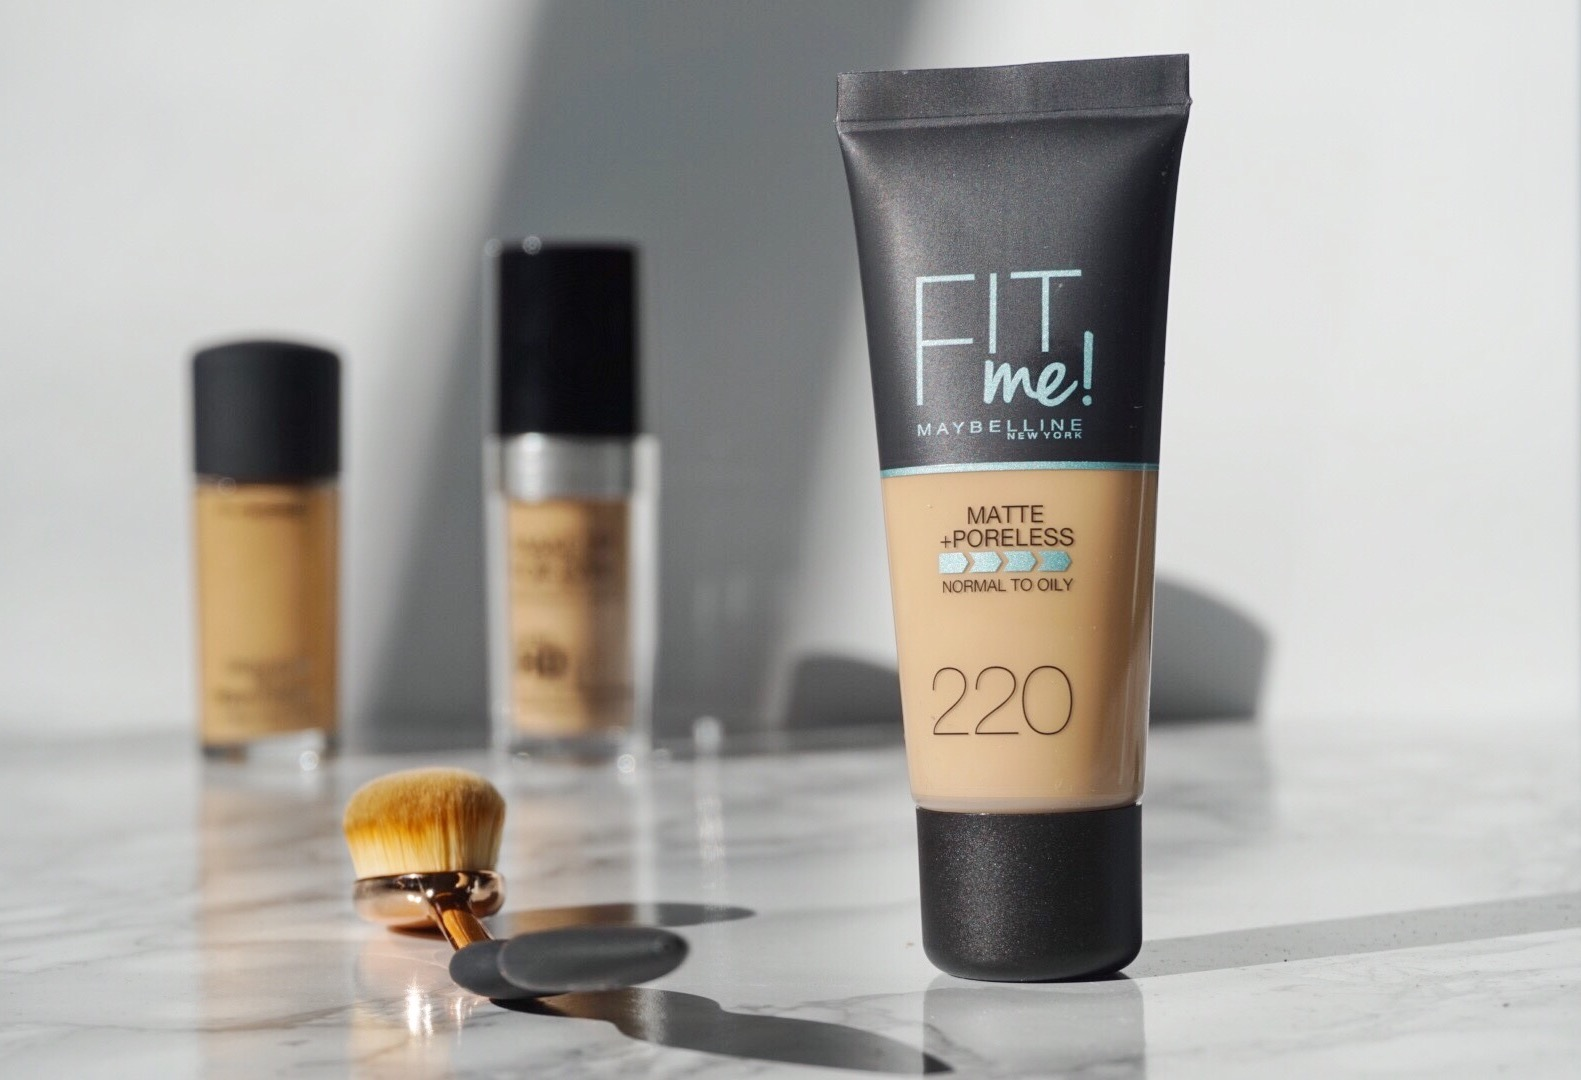 Matte and Poreless foundation 220